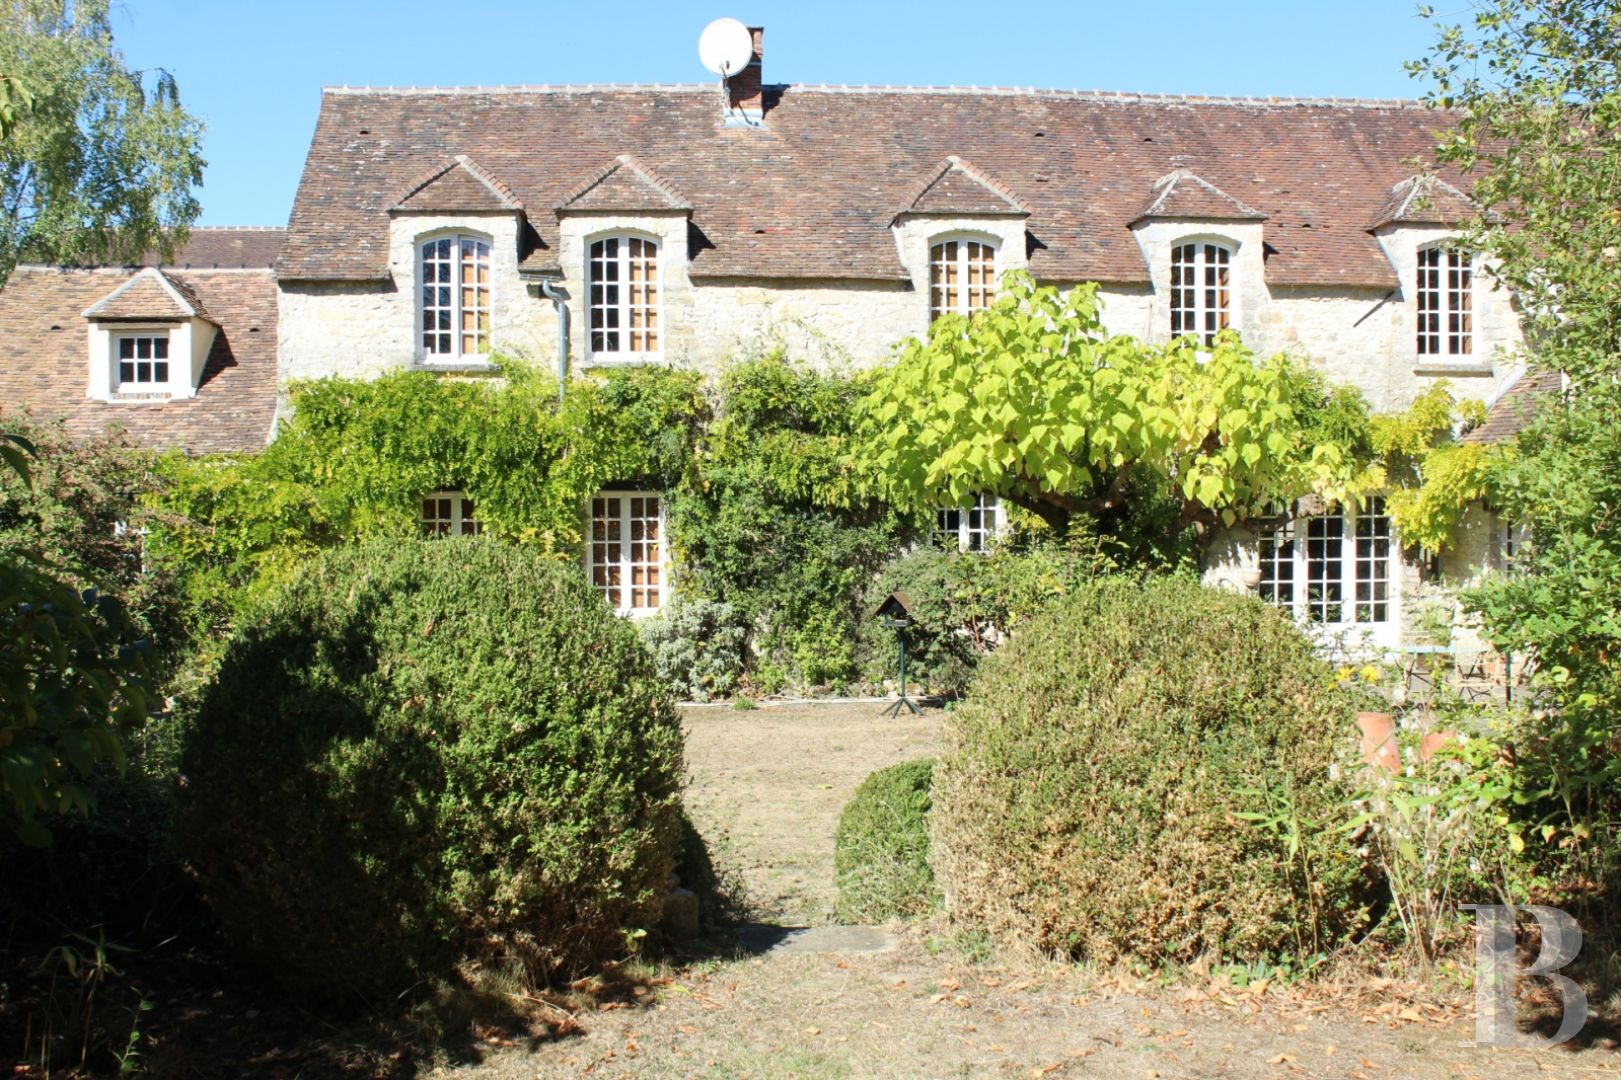 Character Houses For Sale Near Fontainebleau In France